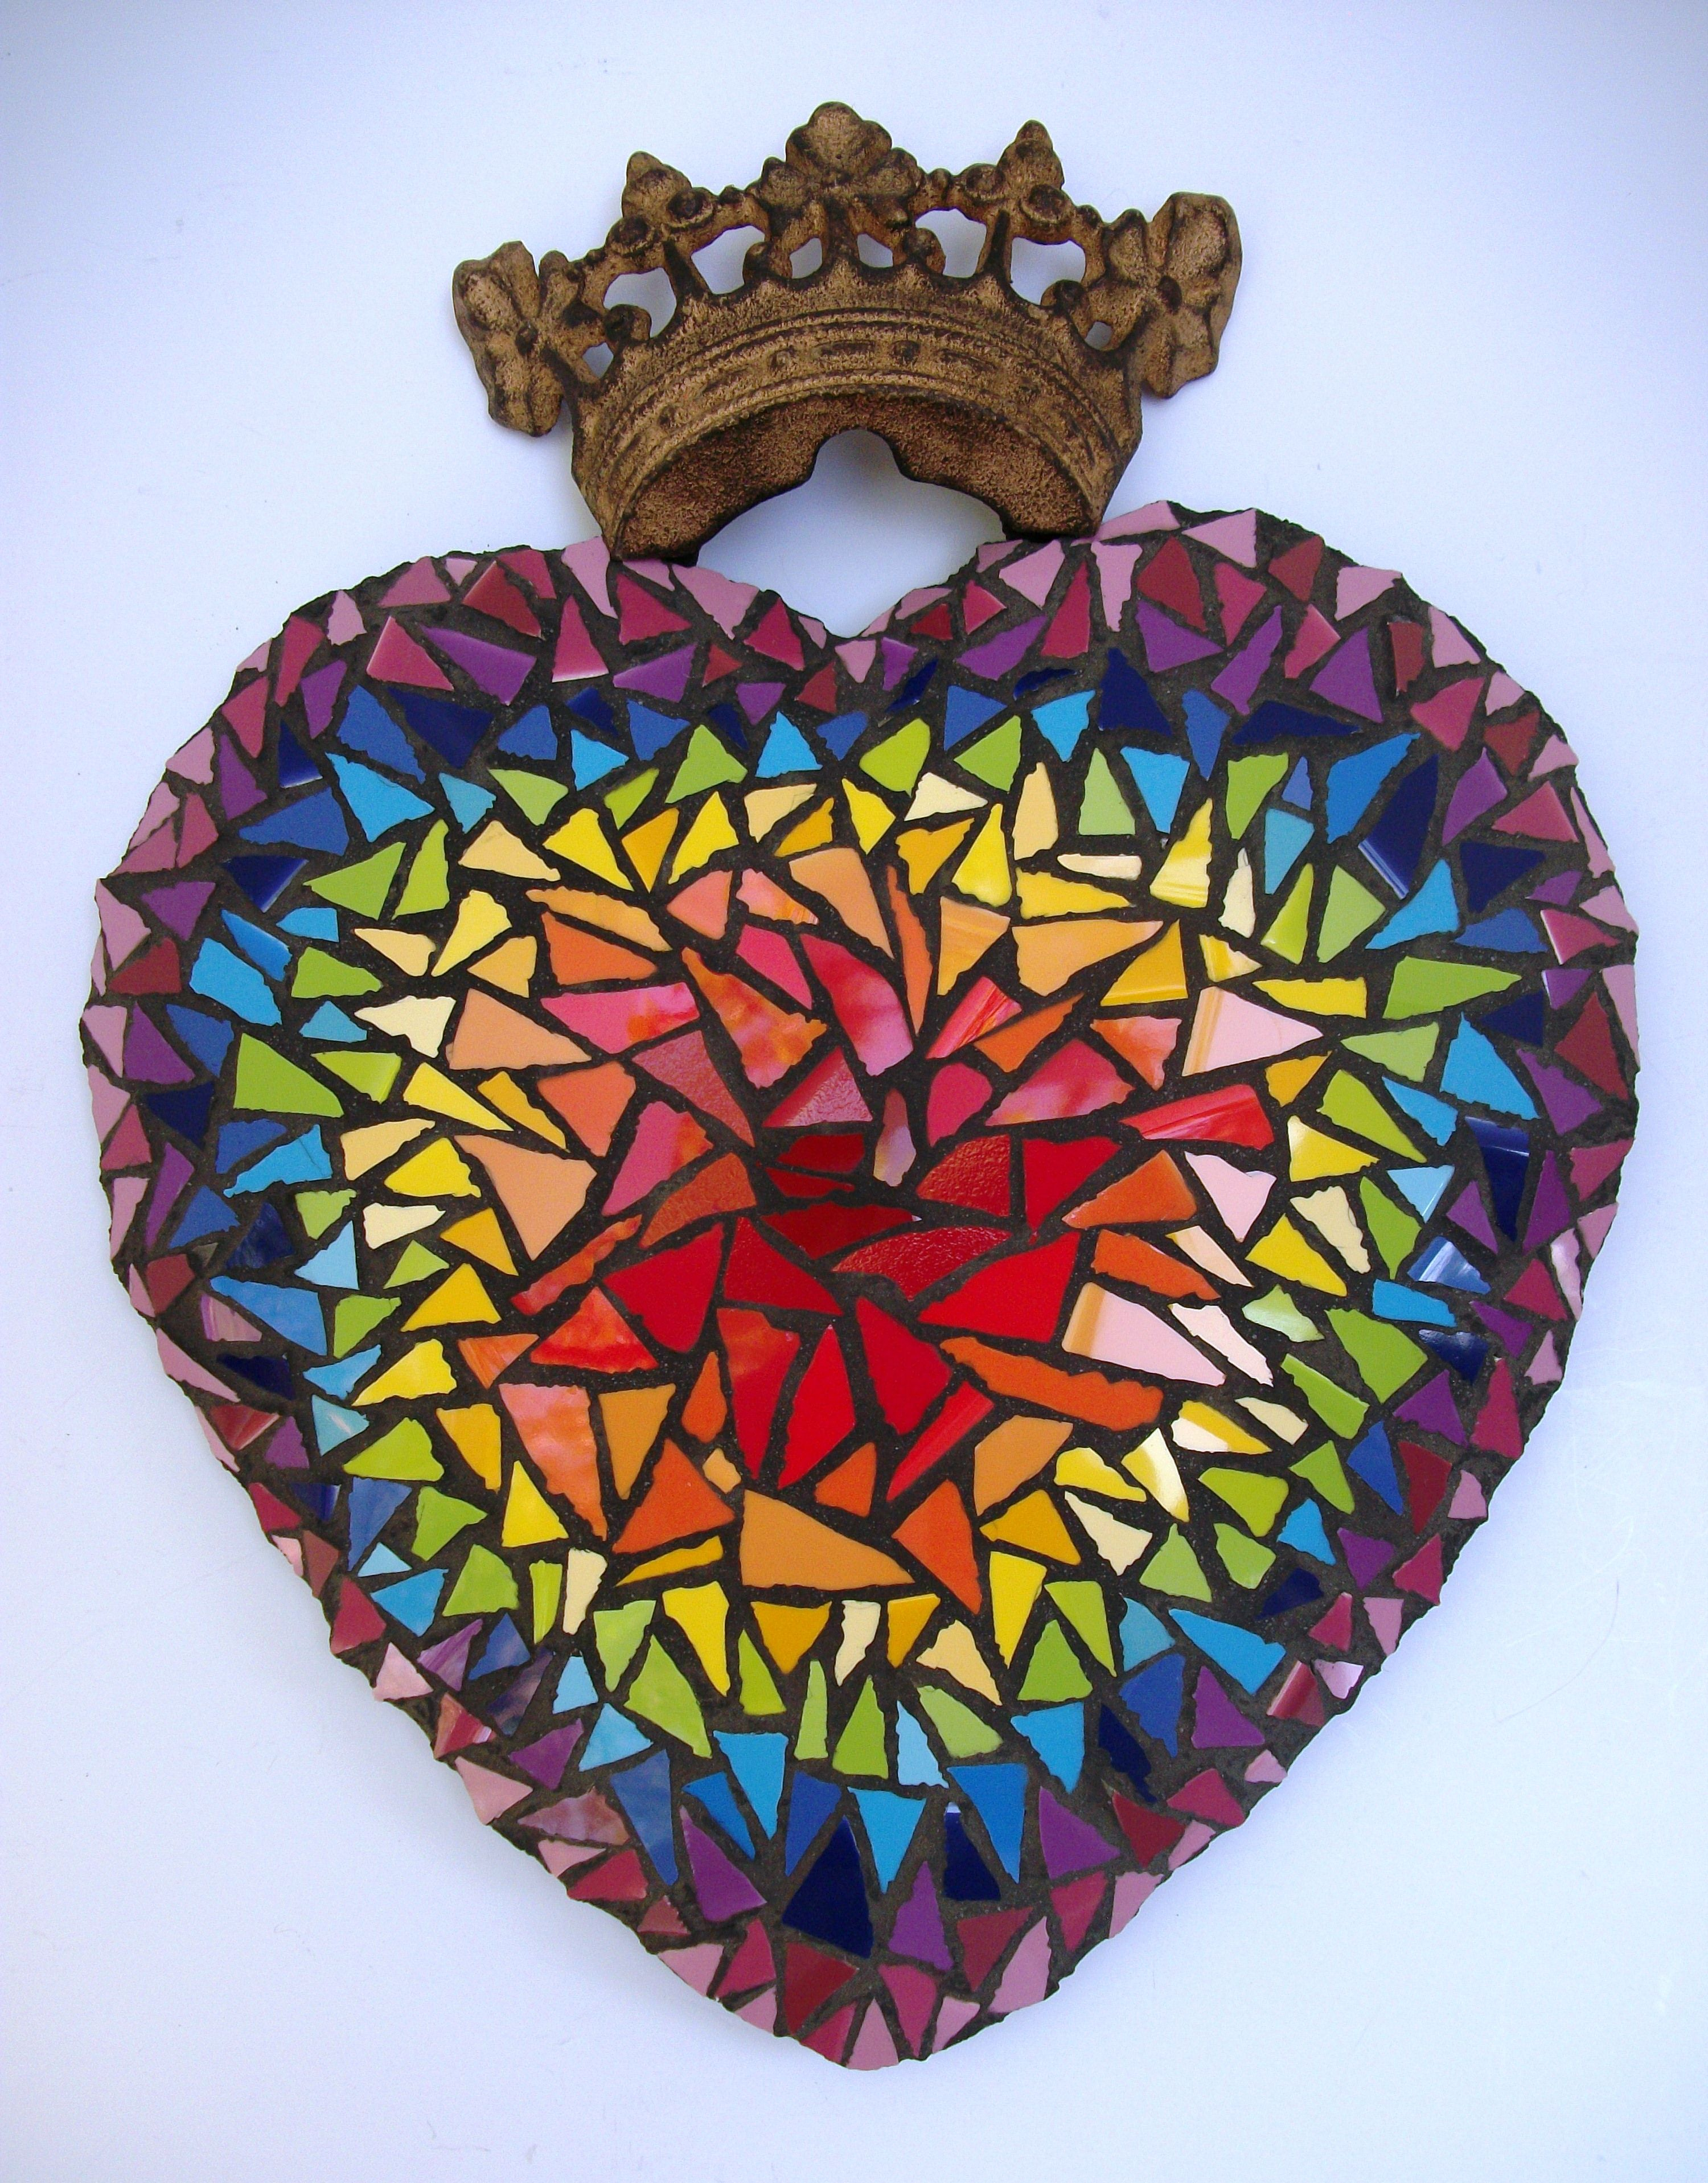 "c. 2012, Krystie Rose Millich. ""Corazon del Arco Iris"" (Rainbow Heart). Glazed ceramic tiles on molded metal base."